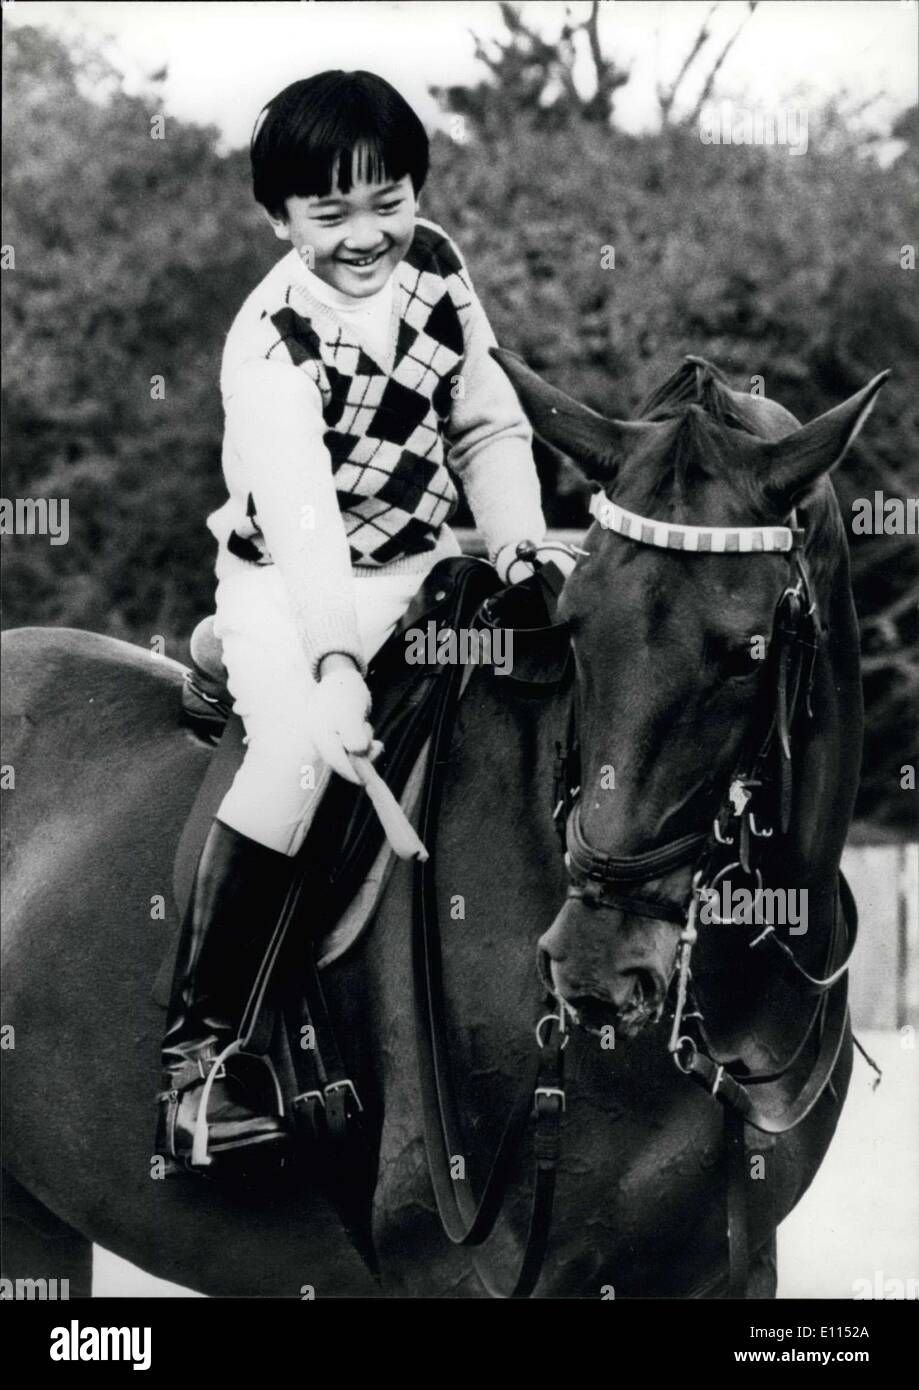 Dec. 07, 1975 - Prince Aya rides on his birthday.: Prince Aya, second son of the Crown Prince and Princess of Japan, feeds his horse a carrot after a ride through the park of his home, the Togu Palace in Tokyo on his 11th birthday. - Stock Image